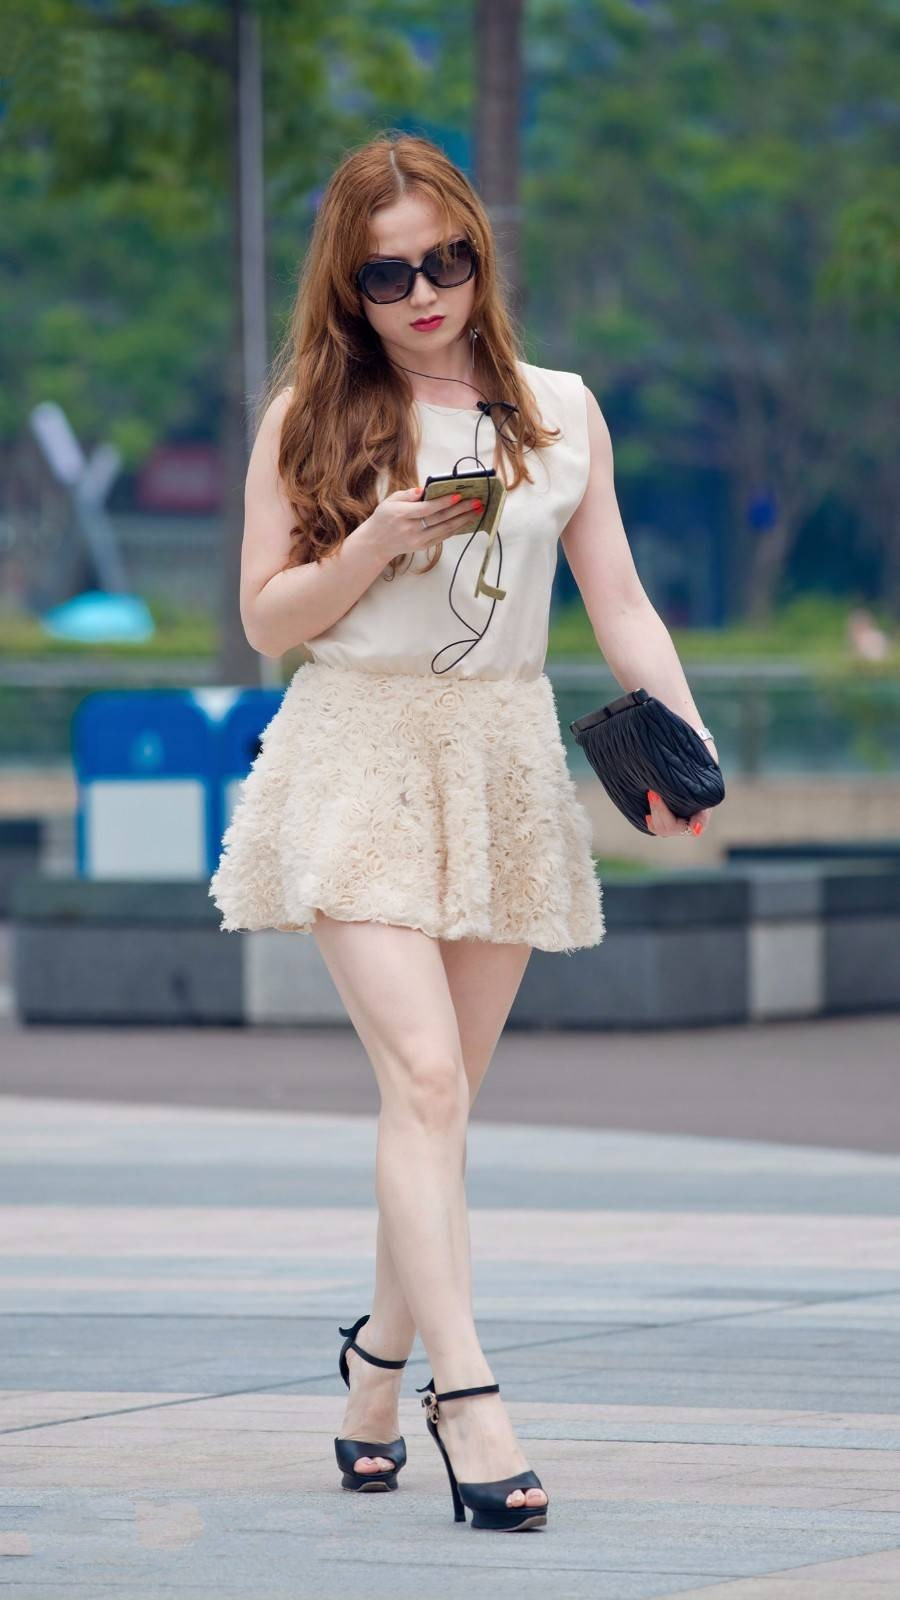 Street photo: Miss sister's skin is very good, white skin is more delicate charm.